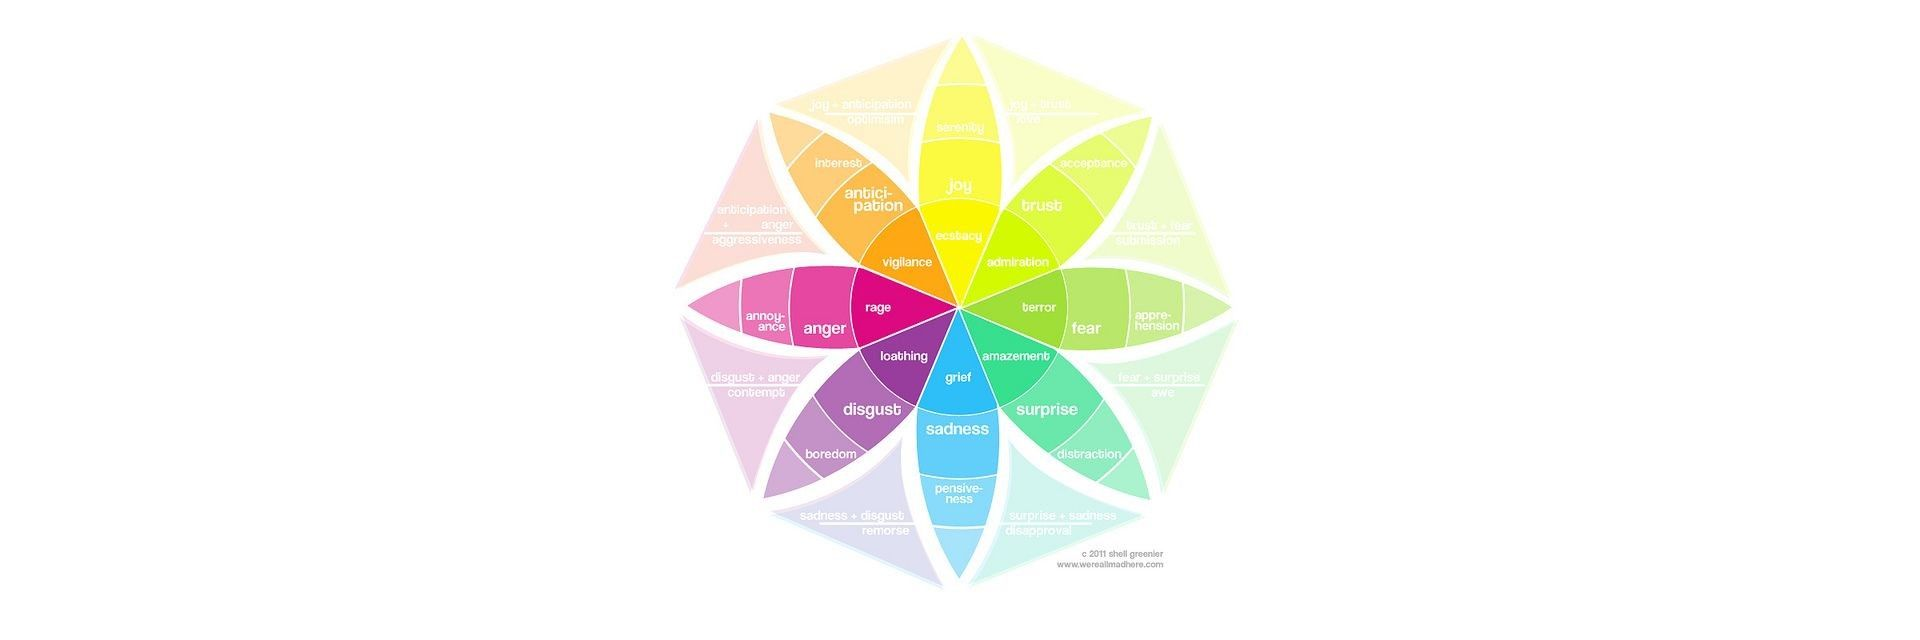 Putting Some Emotion into Your Design – Plutchik's Wheel of Emotions